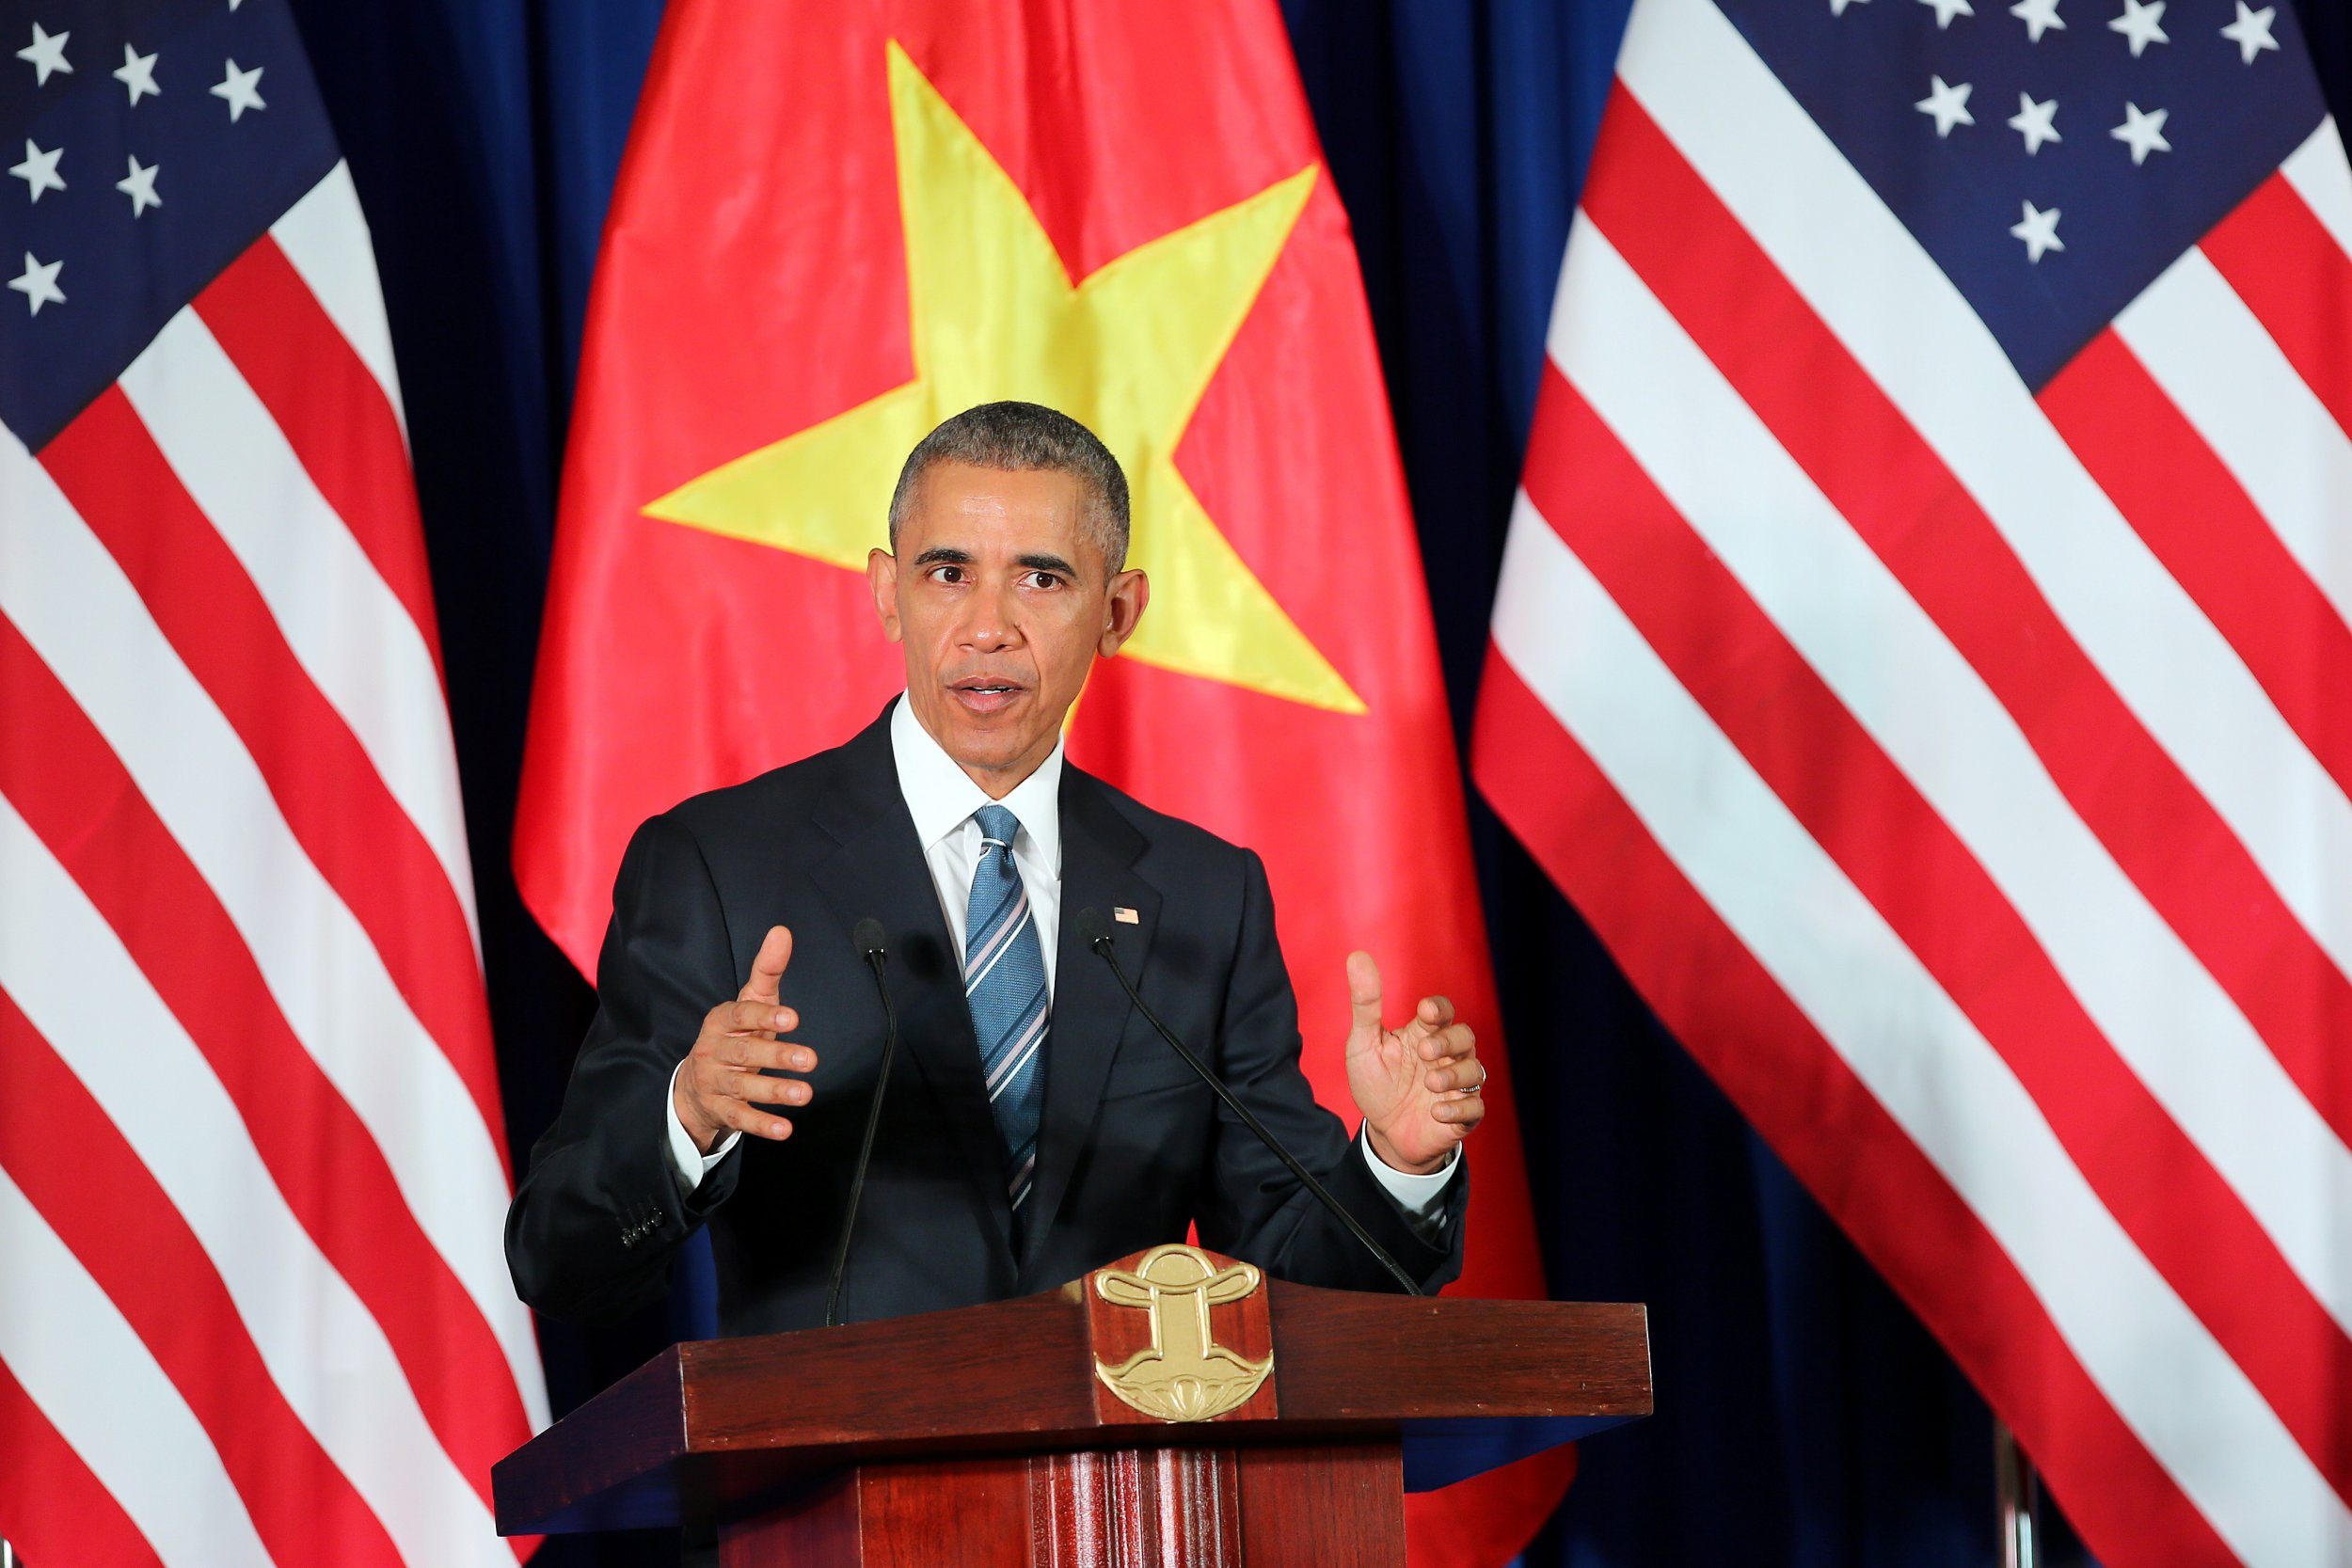 0523_vietnam_obama_arms_embargo